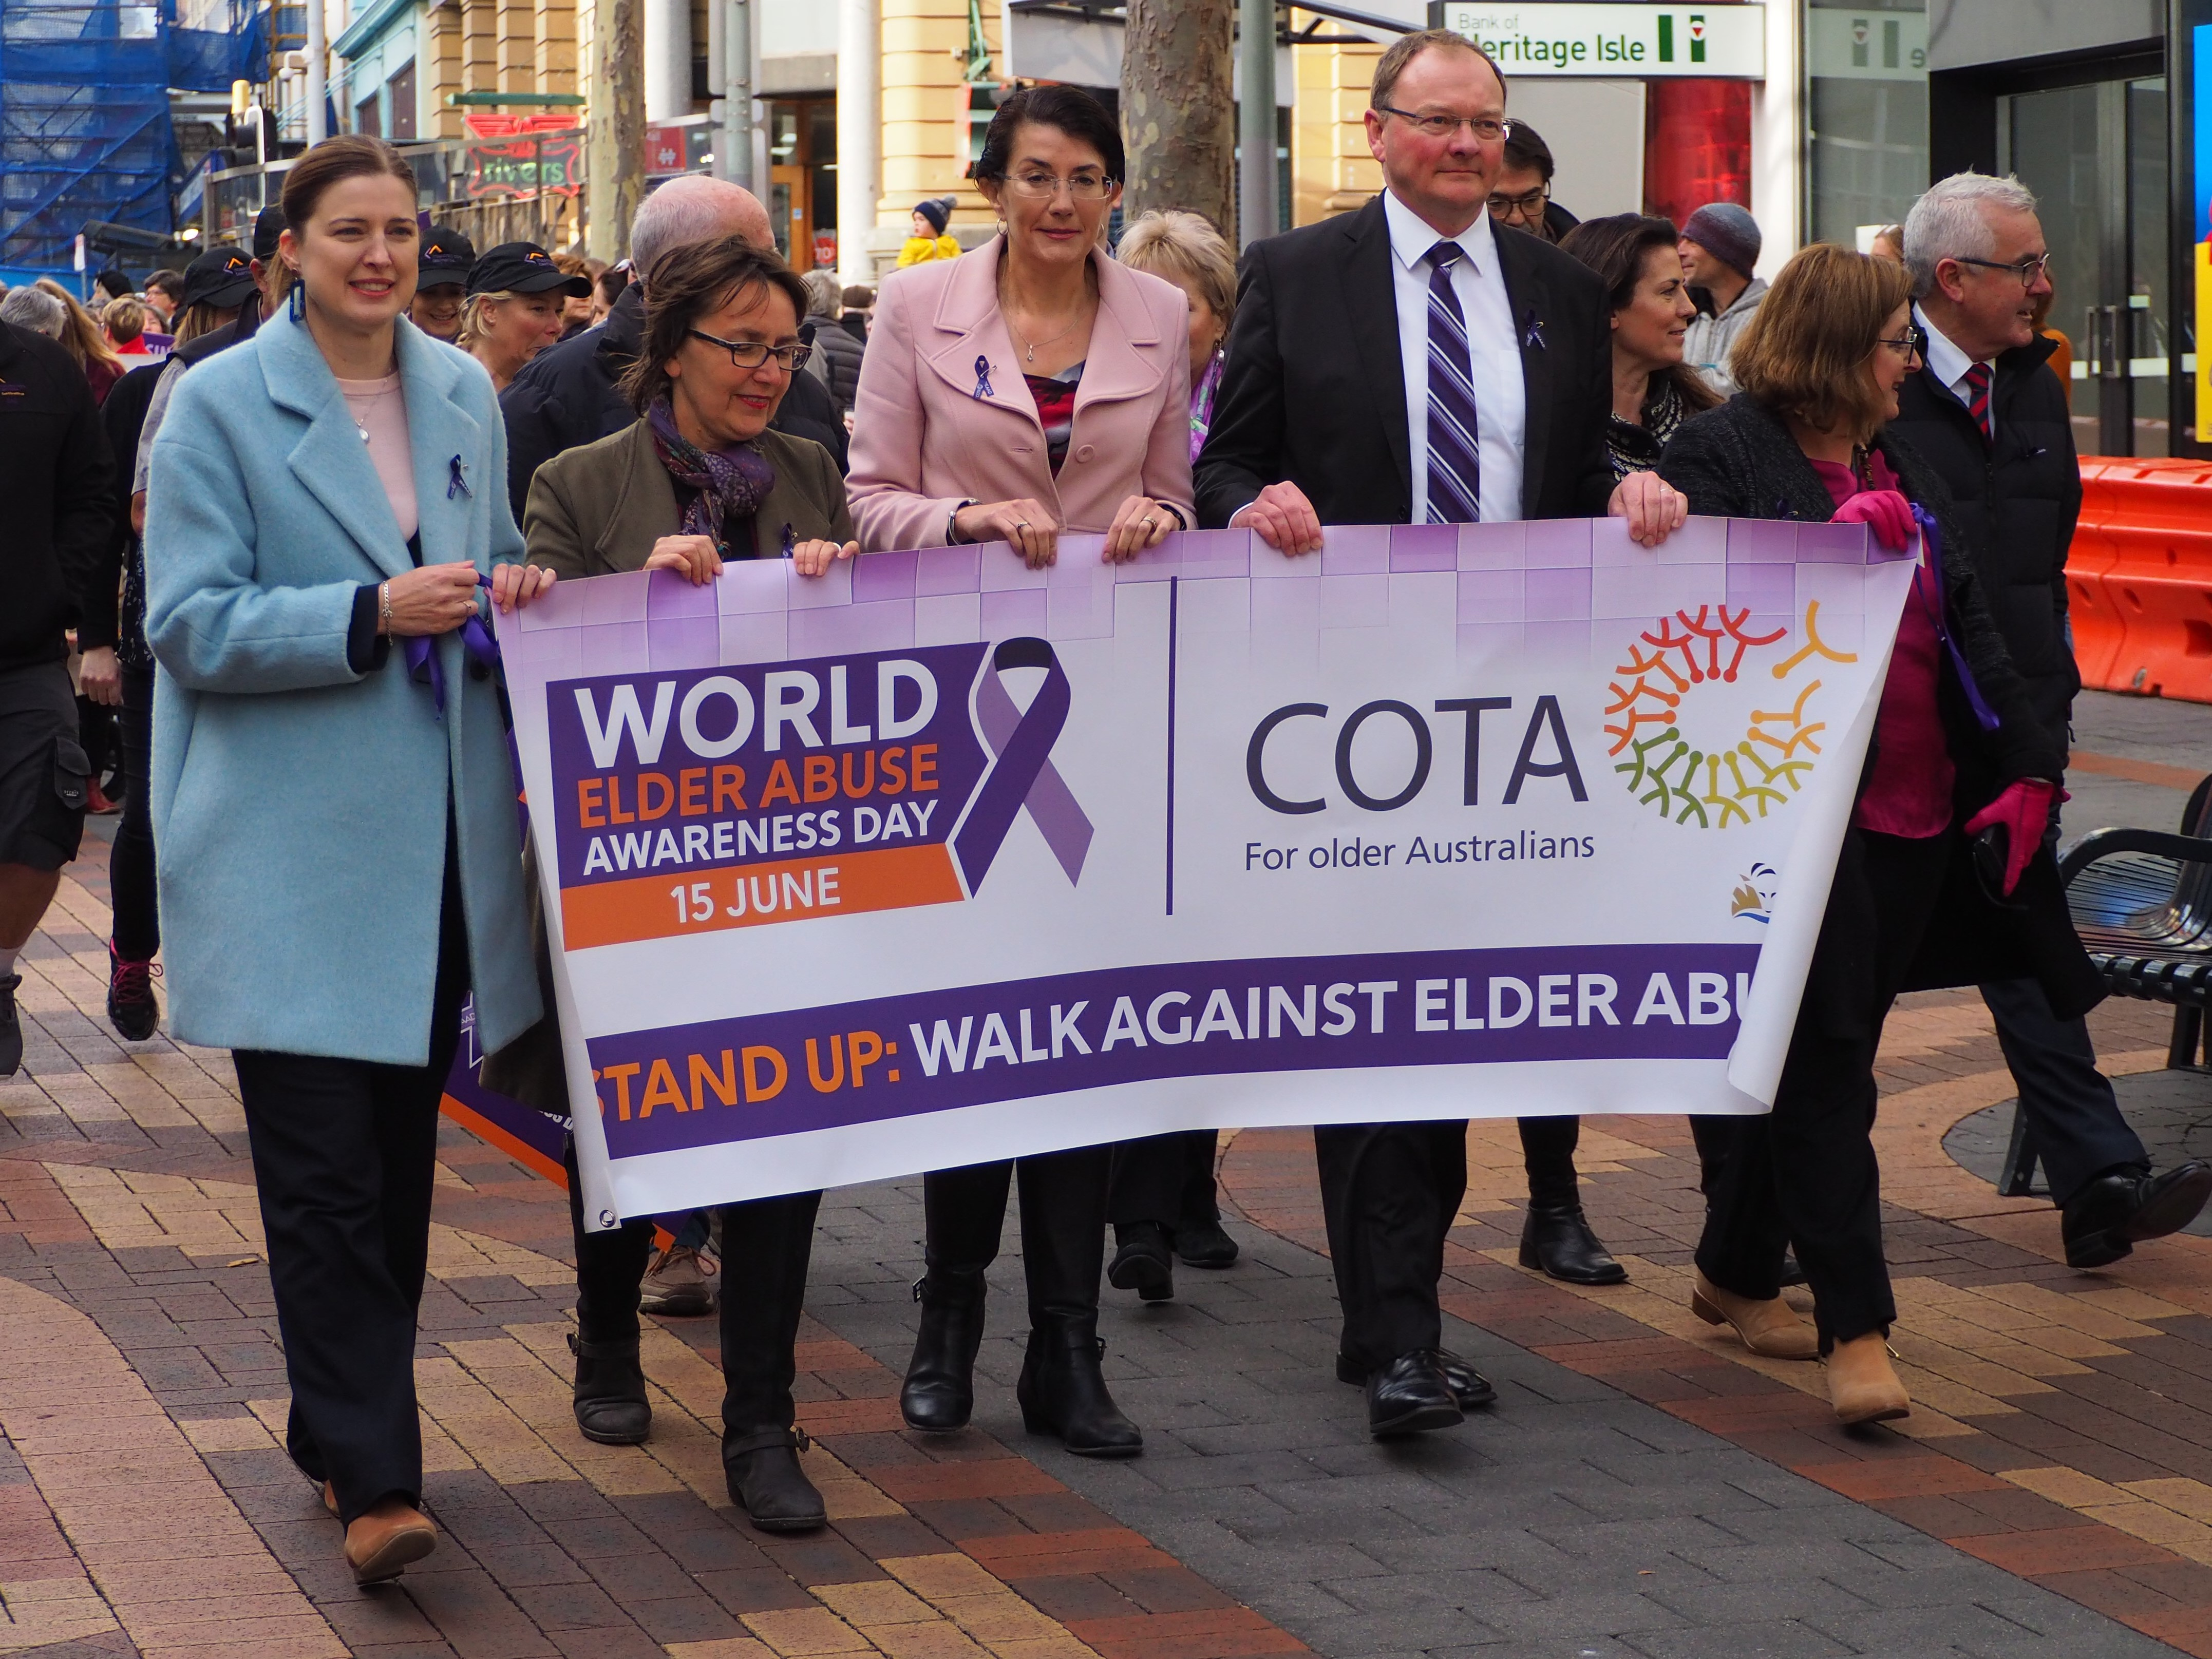 Walks Against Elder Abuse